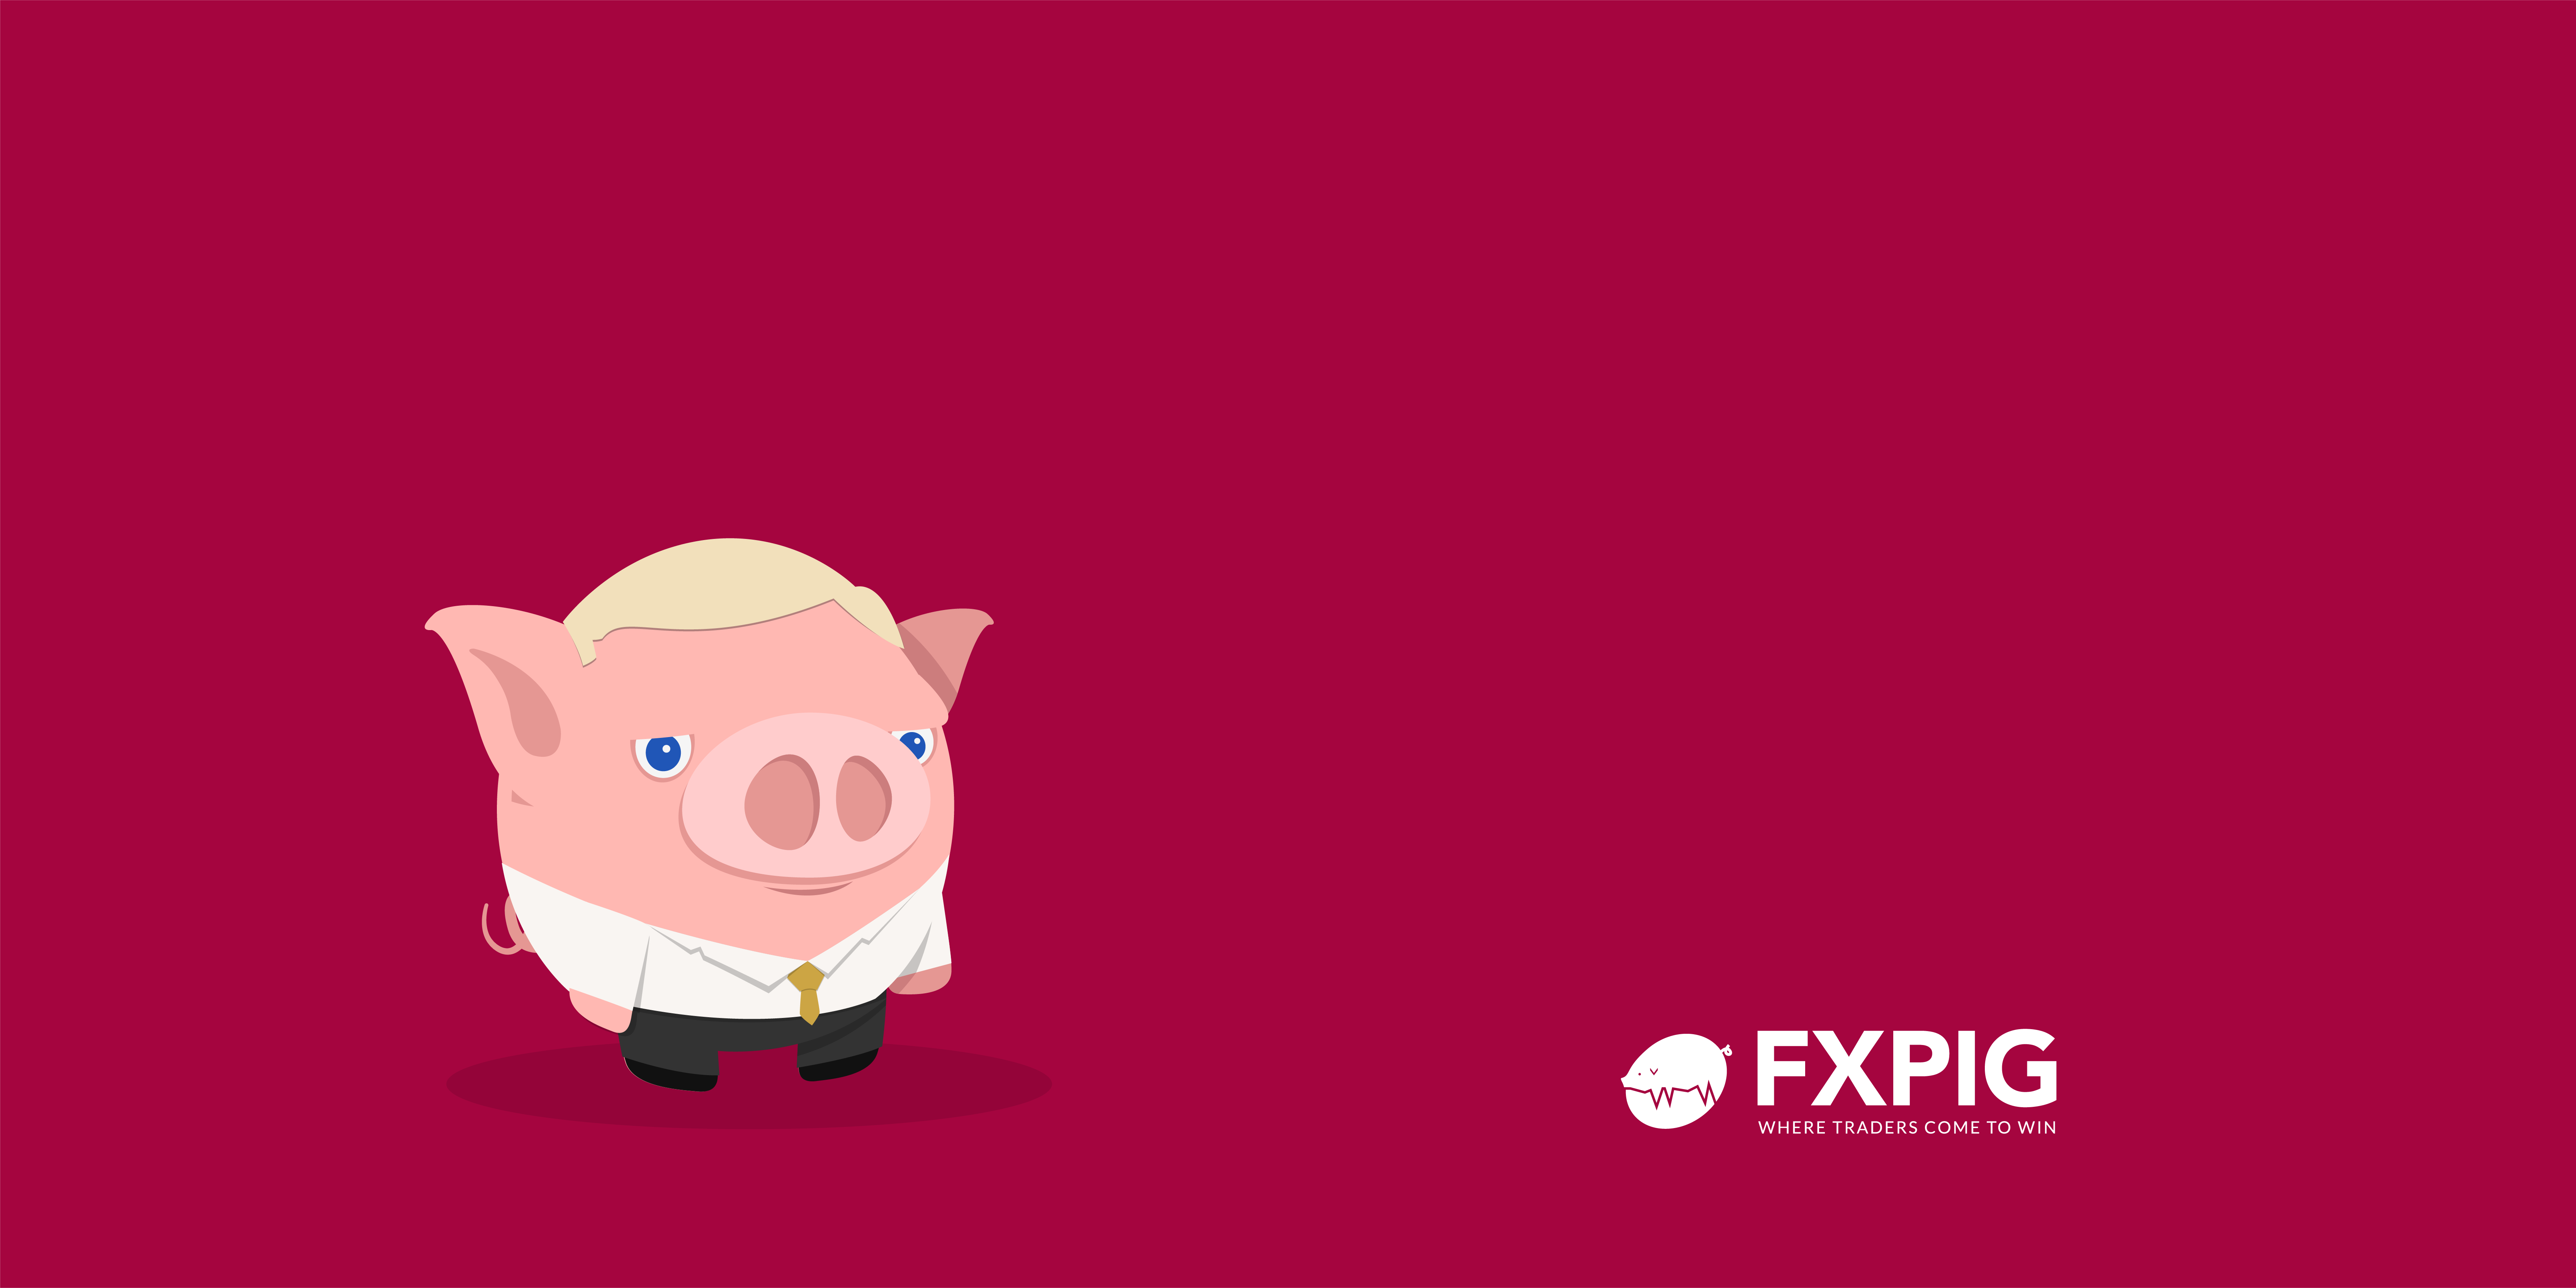 Forex-trading-quote_uncertainty-of-the-market-SEYKOTA-FXPIG